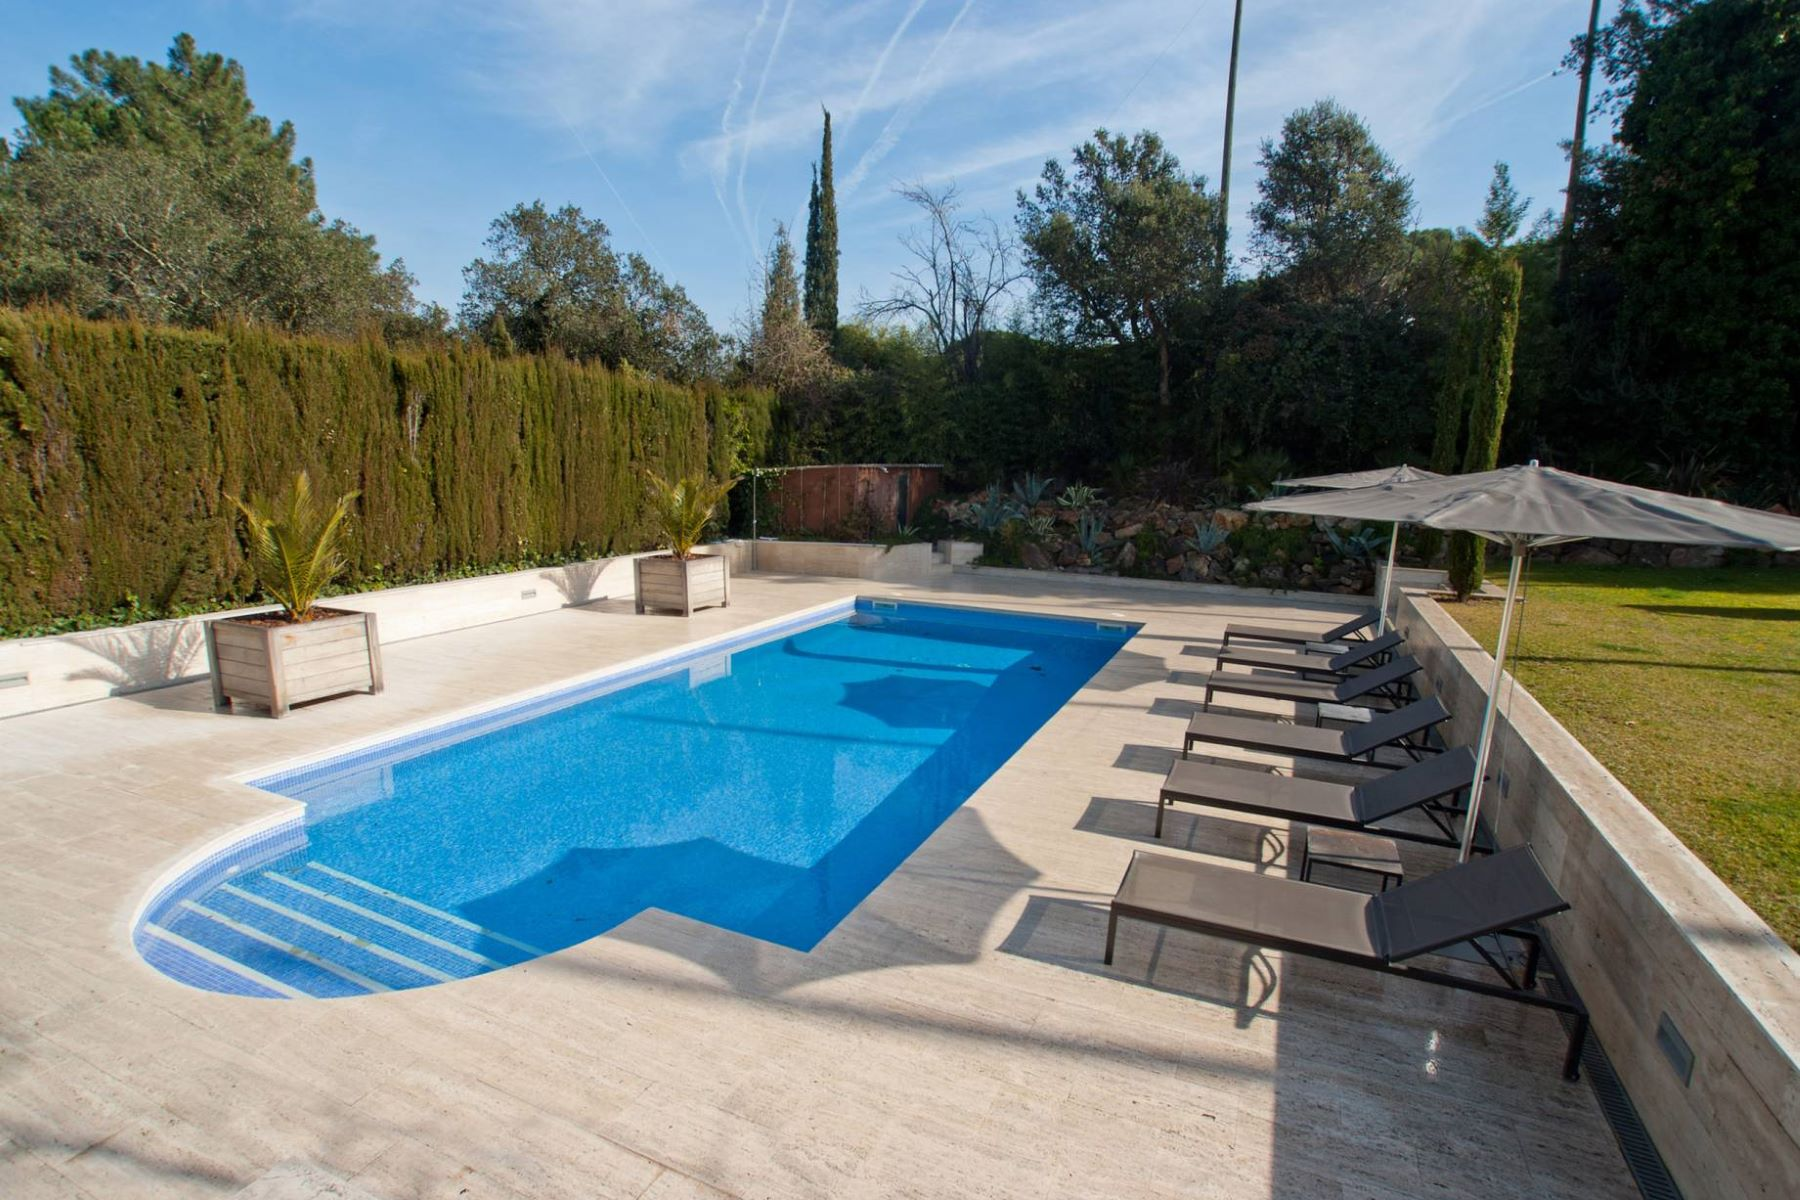 独户住宅 为 销售 在 Beautiful refurbished villa on the Golf Costa Brava 圣克里斯蒂娜, 科斯塔布拉瓦, 17246 西班牙